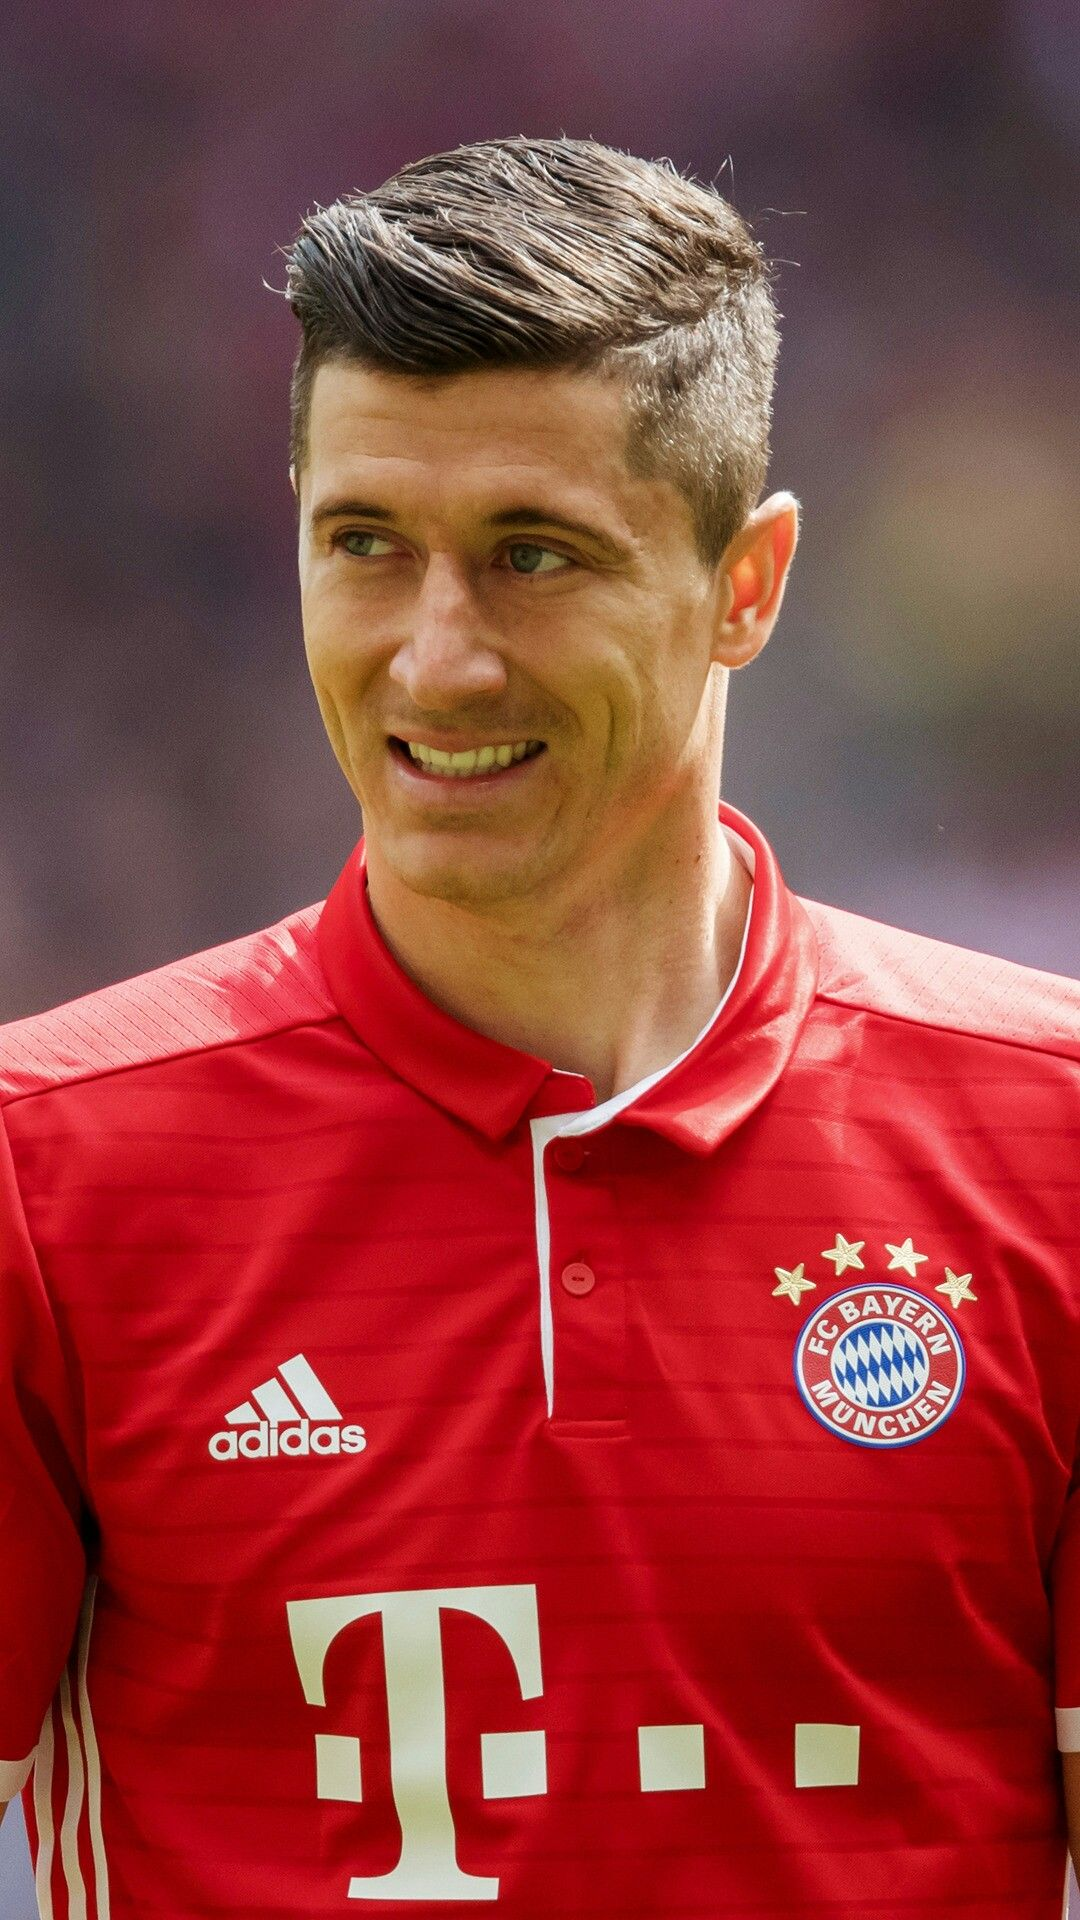 hair style | kid hairstyles | robert lewandowski